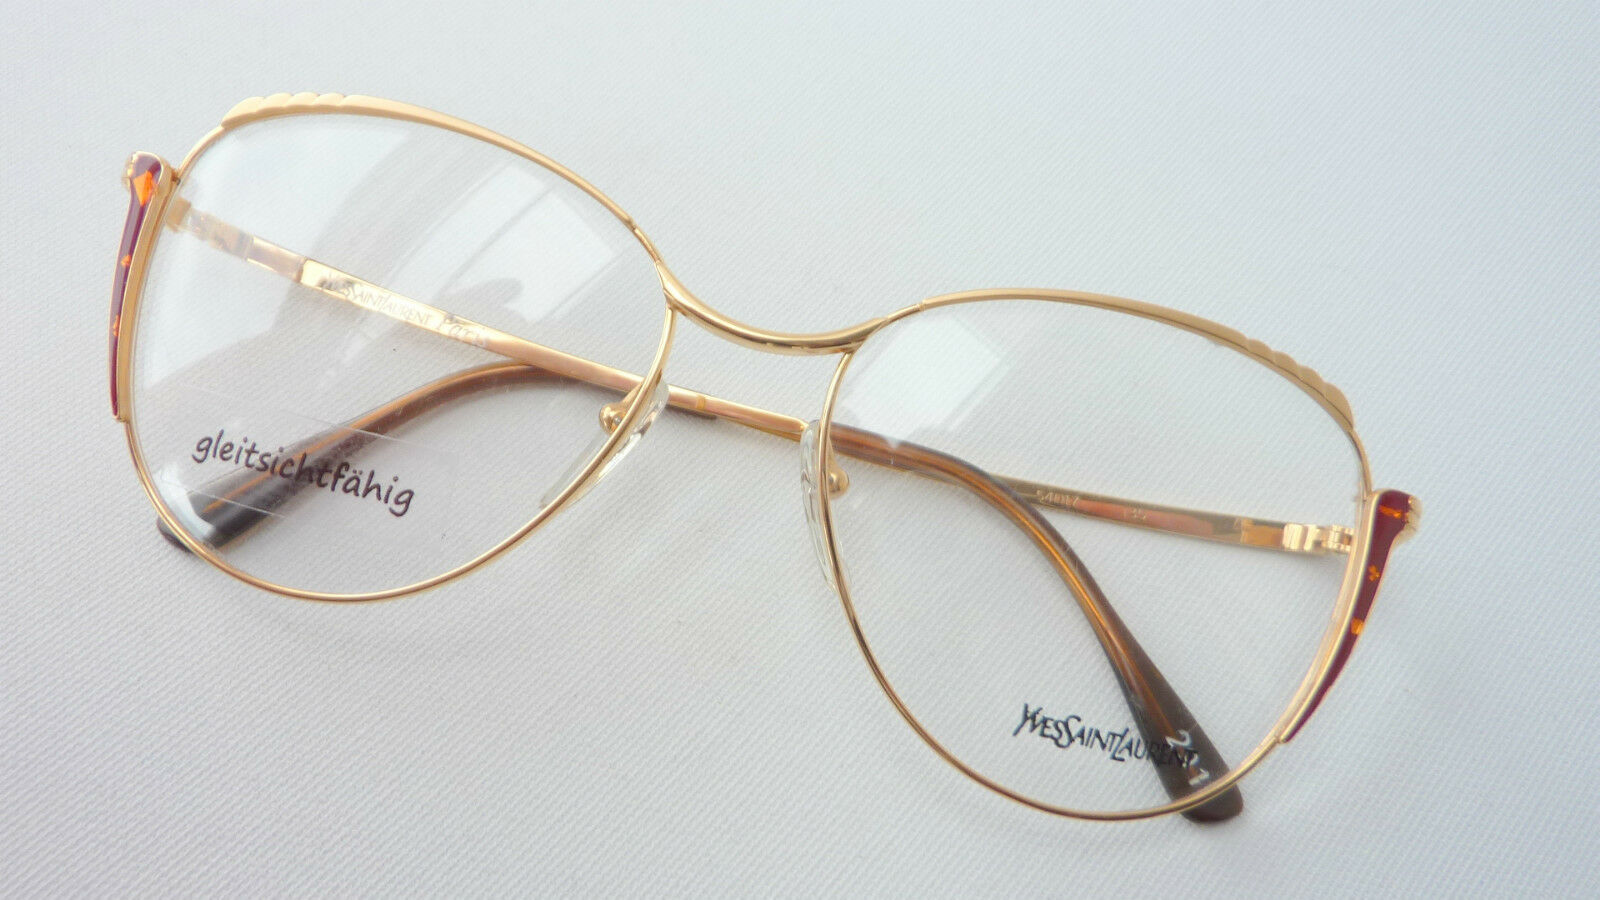 Yves St Laurent vintage glasses metal frame oversized 70s Depth Form Golden